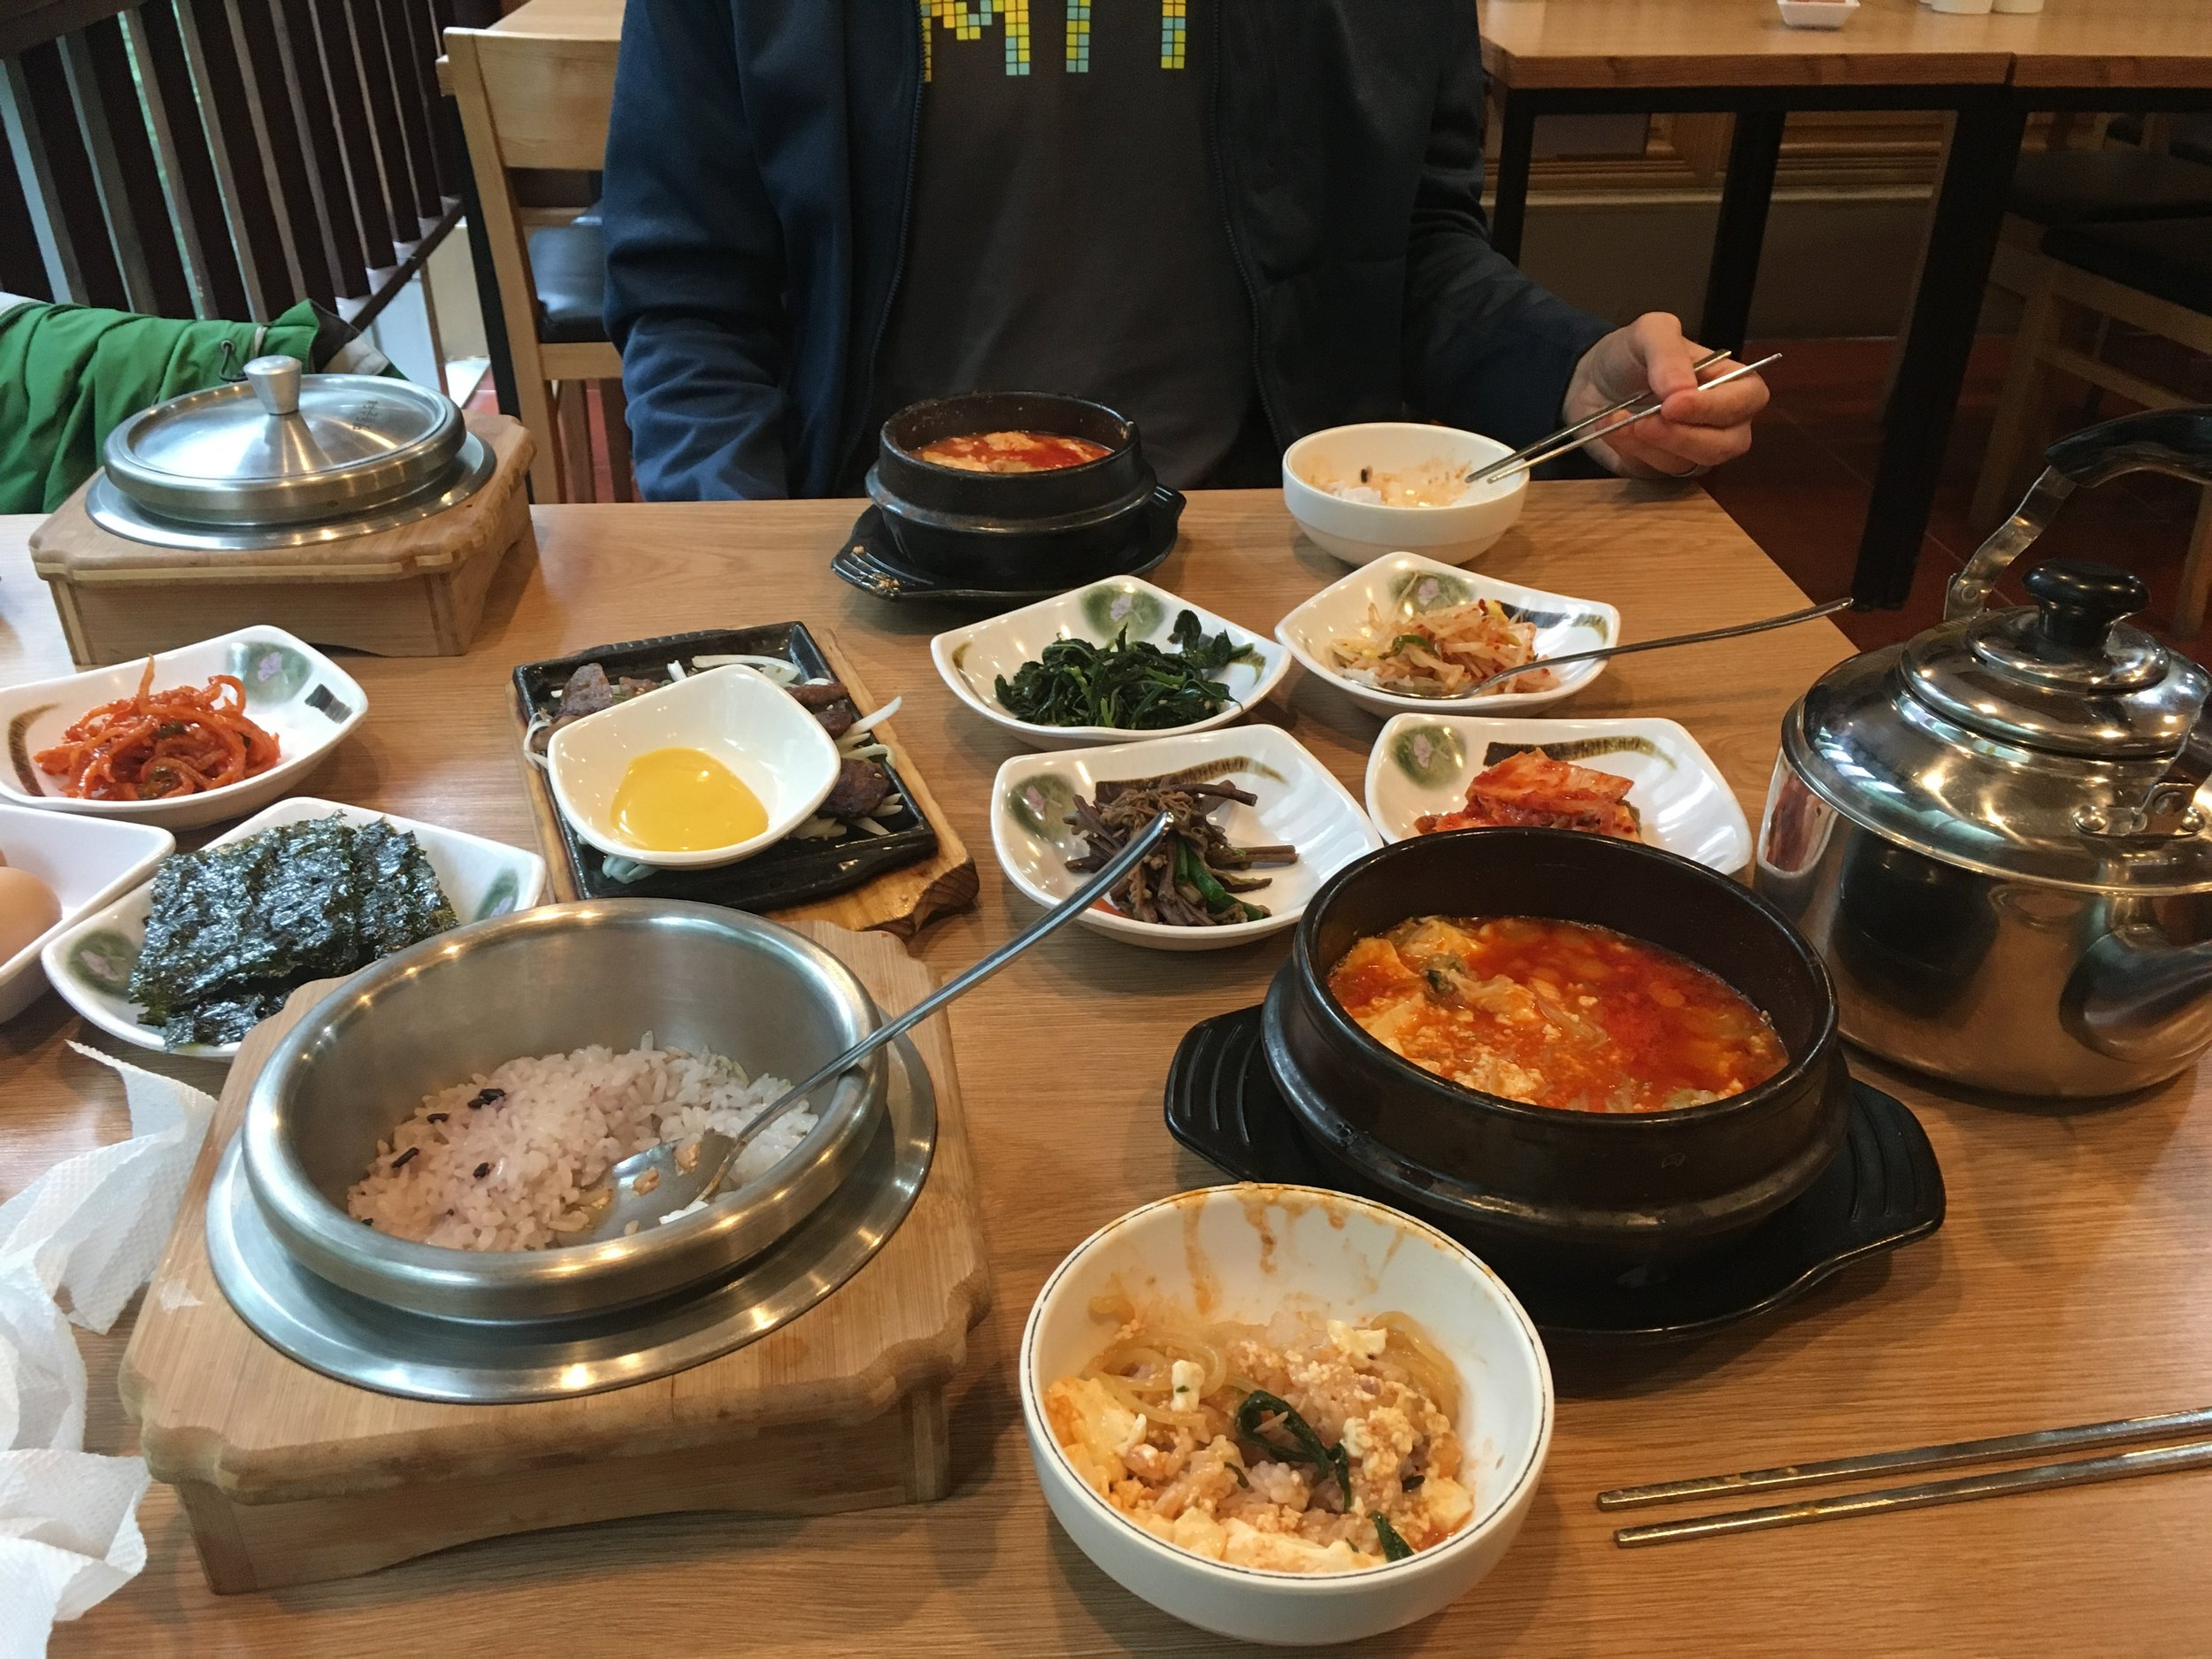 Traditional Korean meal with small pot of veggies and meat, steamed rice, and lots of sides